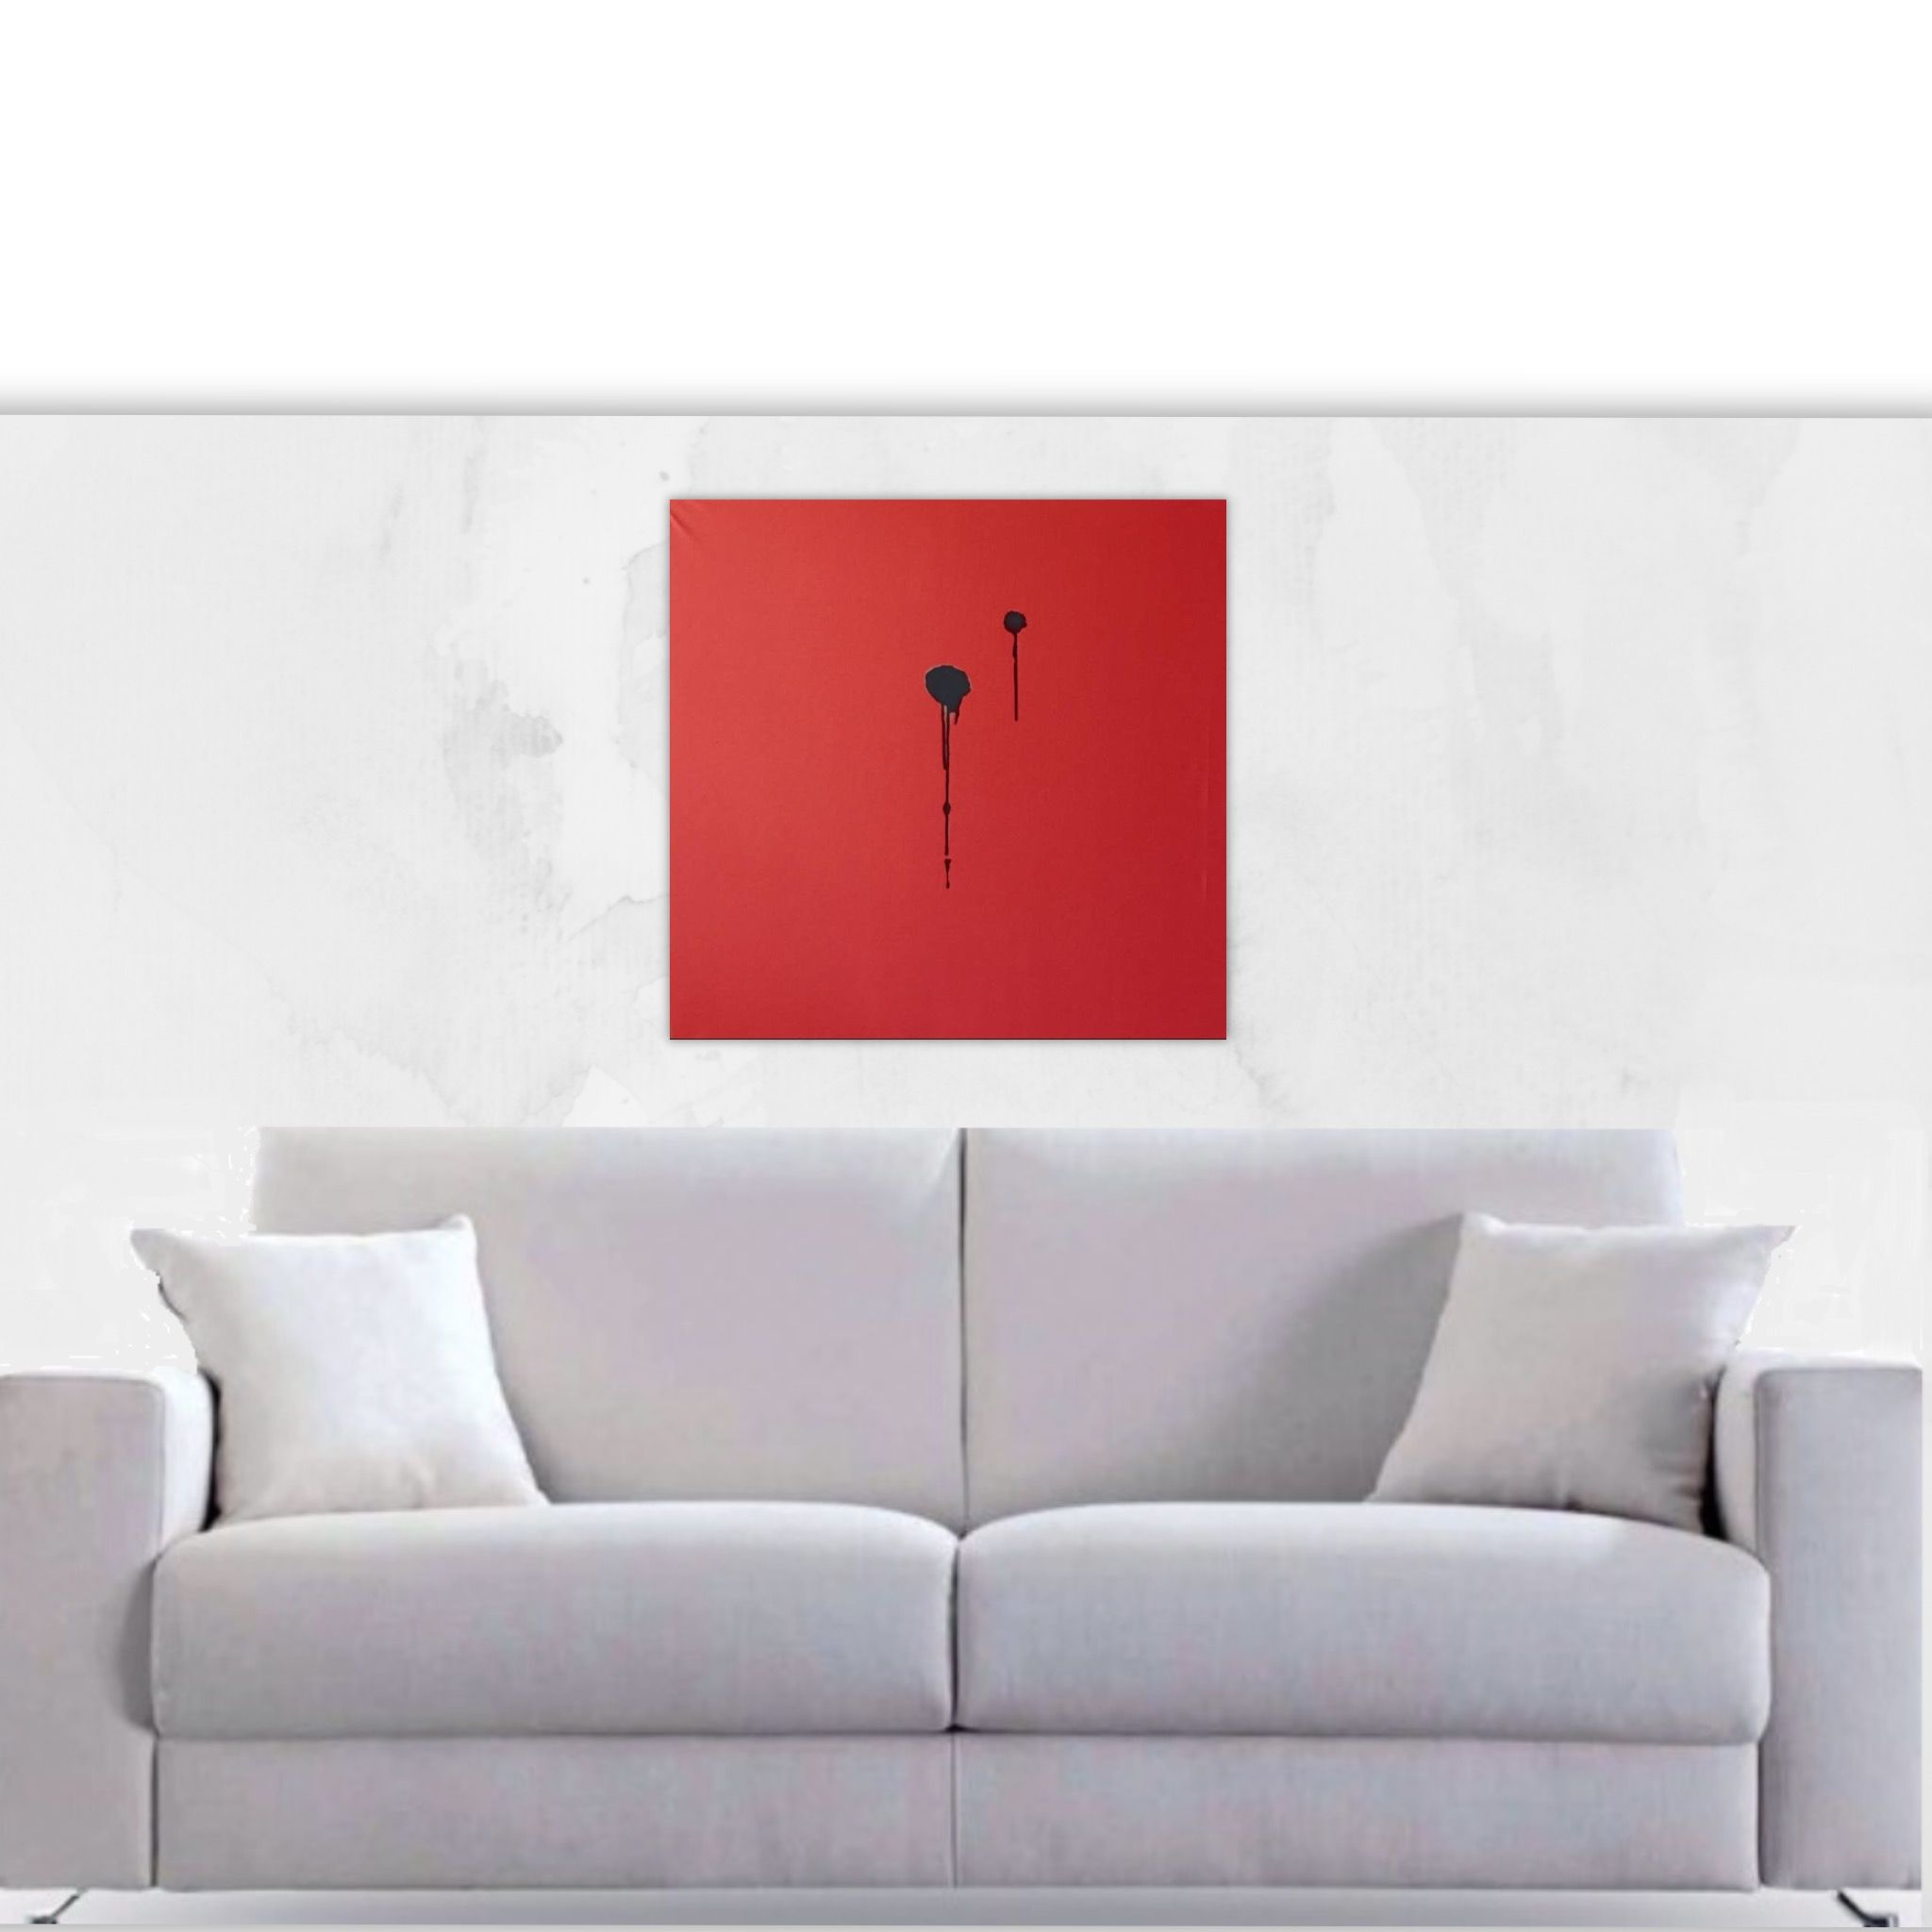 Creative Abstract Art Minimalist Modern Art Painting Square Hand Painted Canvas Unique Painting Gift Large Red Painting Livingroom Art In 2020 Minimalist Modern Art Living Room Art Unique Paintings #red #paintings #for #living #room